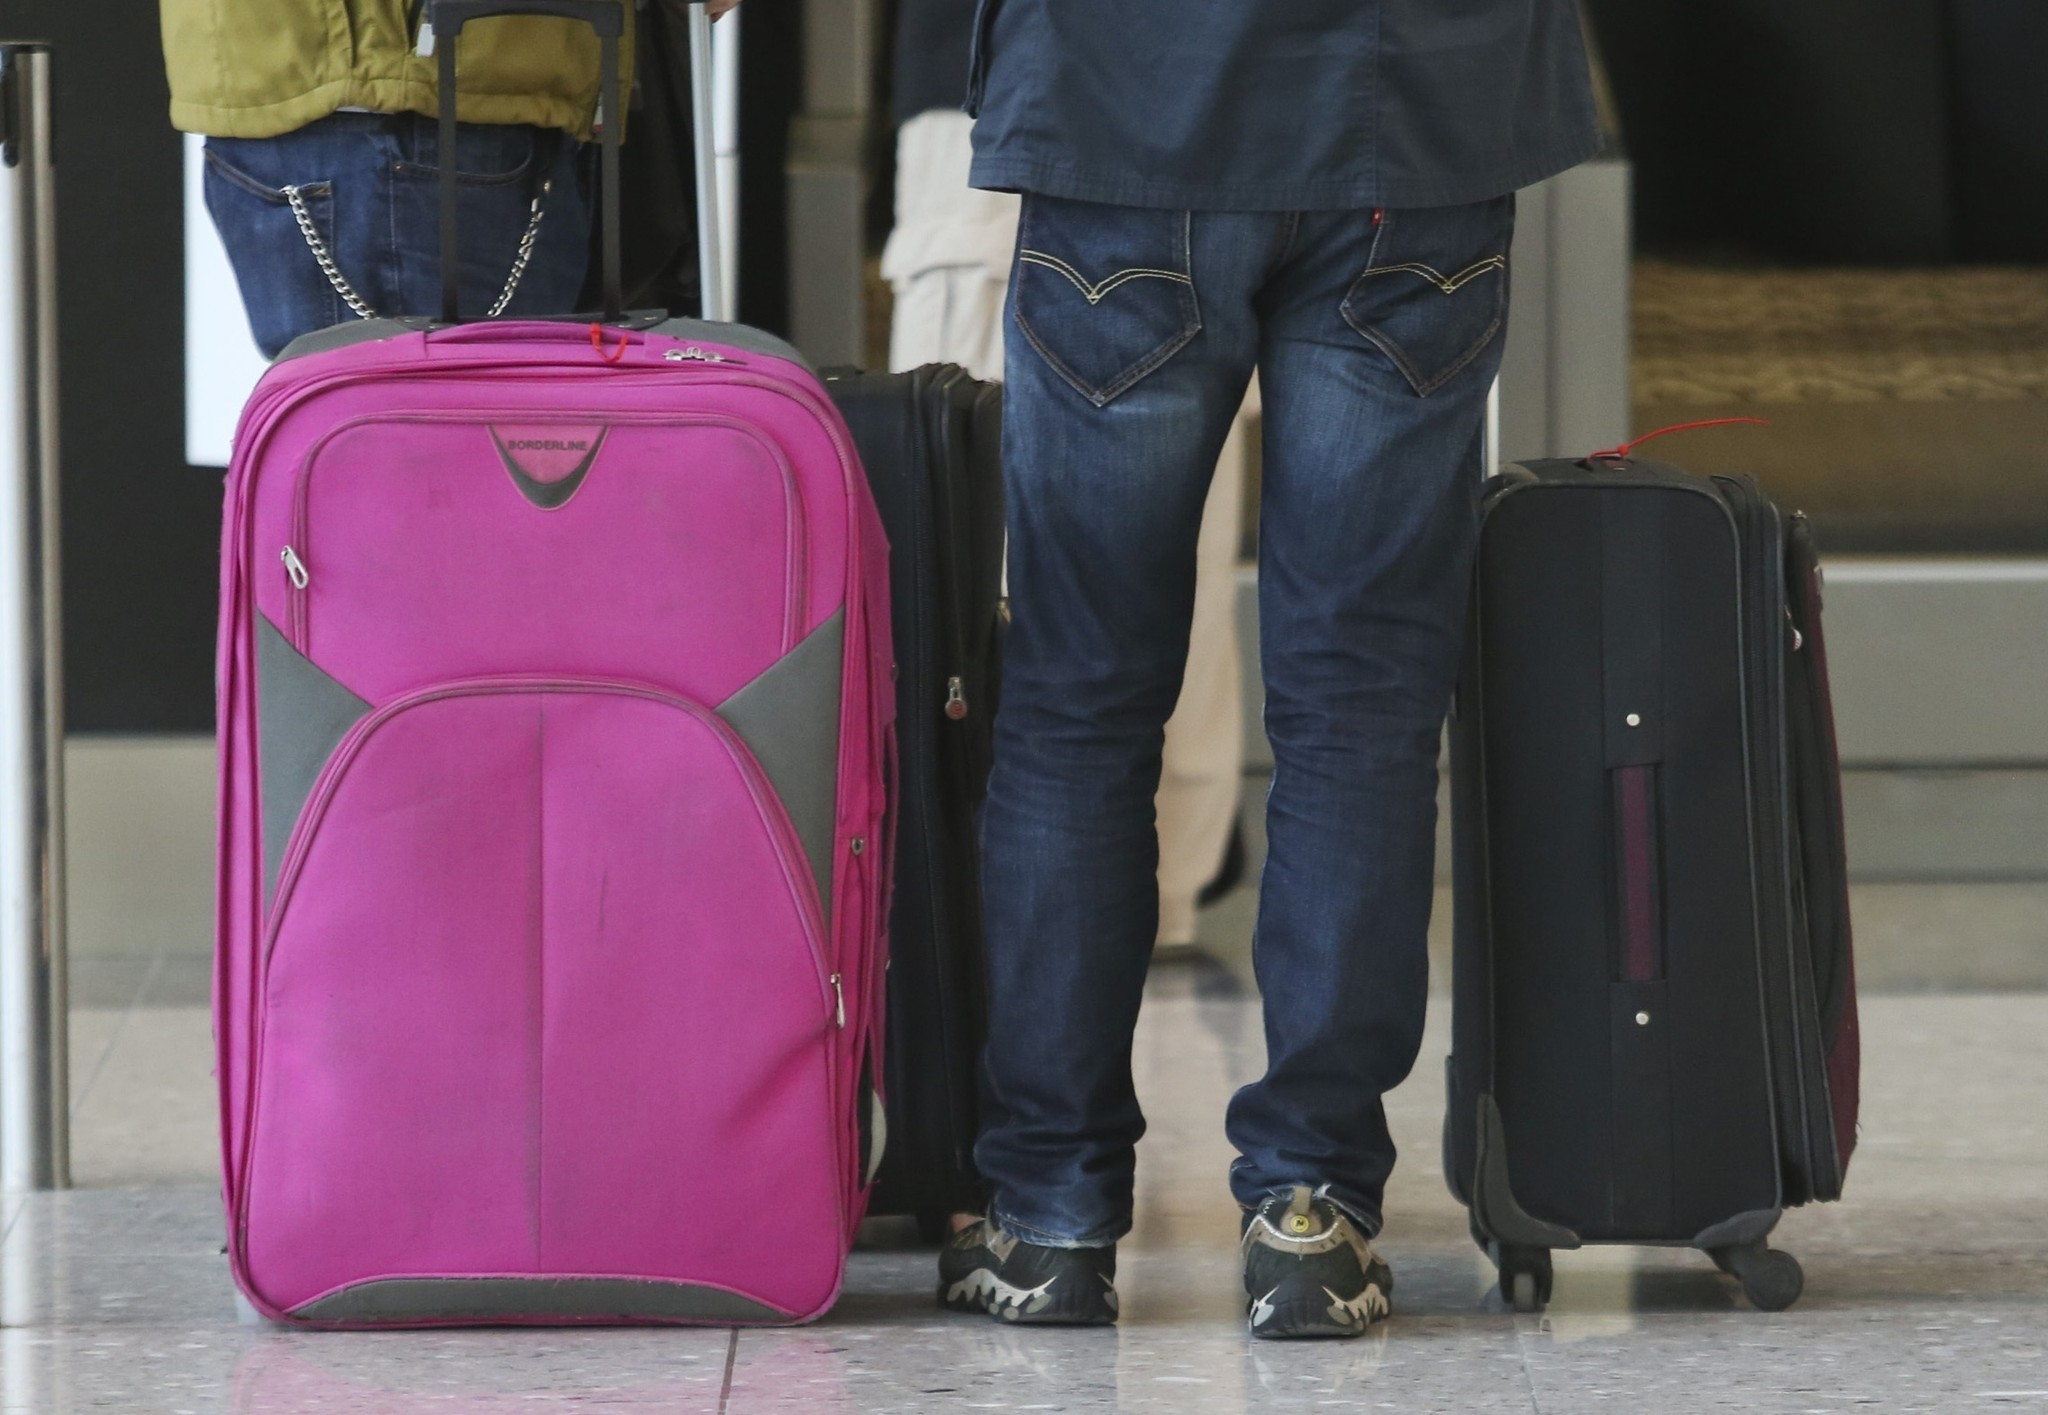 Carry On Bag Size Varies By Airline And Can Catch You